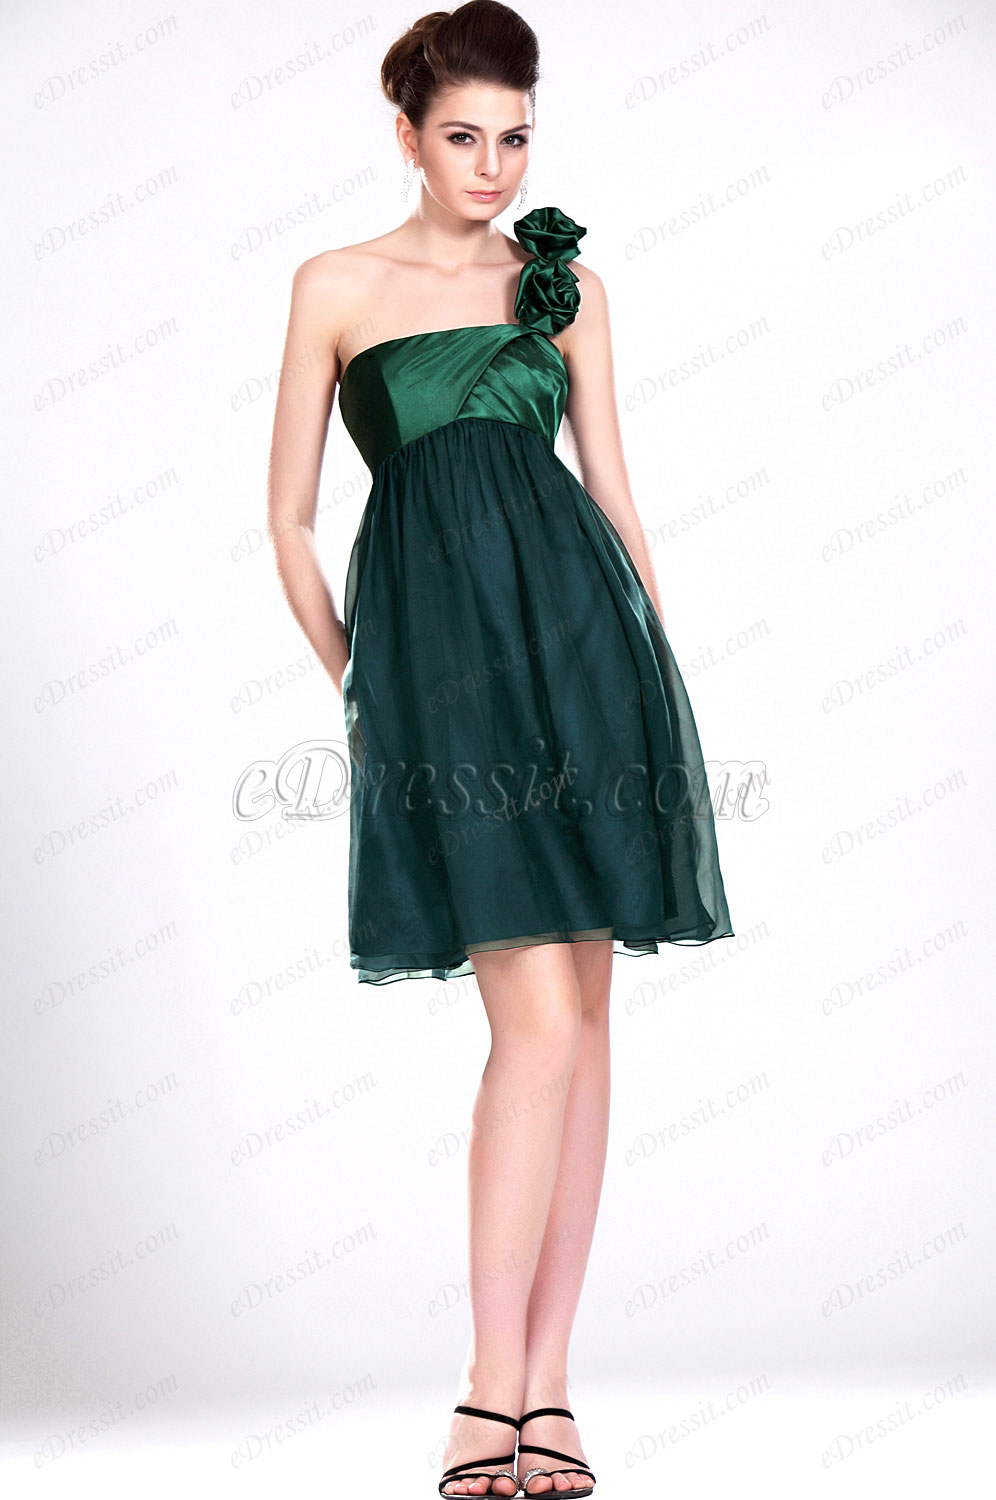 eDressit New Simple One Shoulder Green Bridesmaid Dress (07111004)